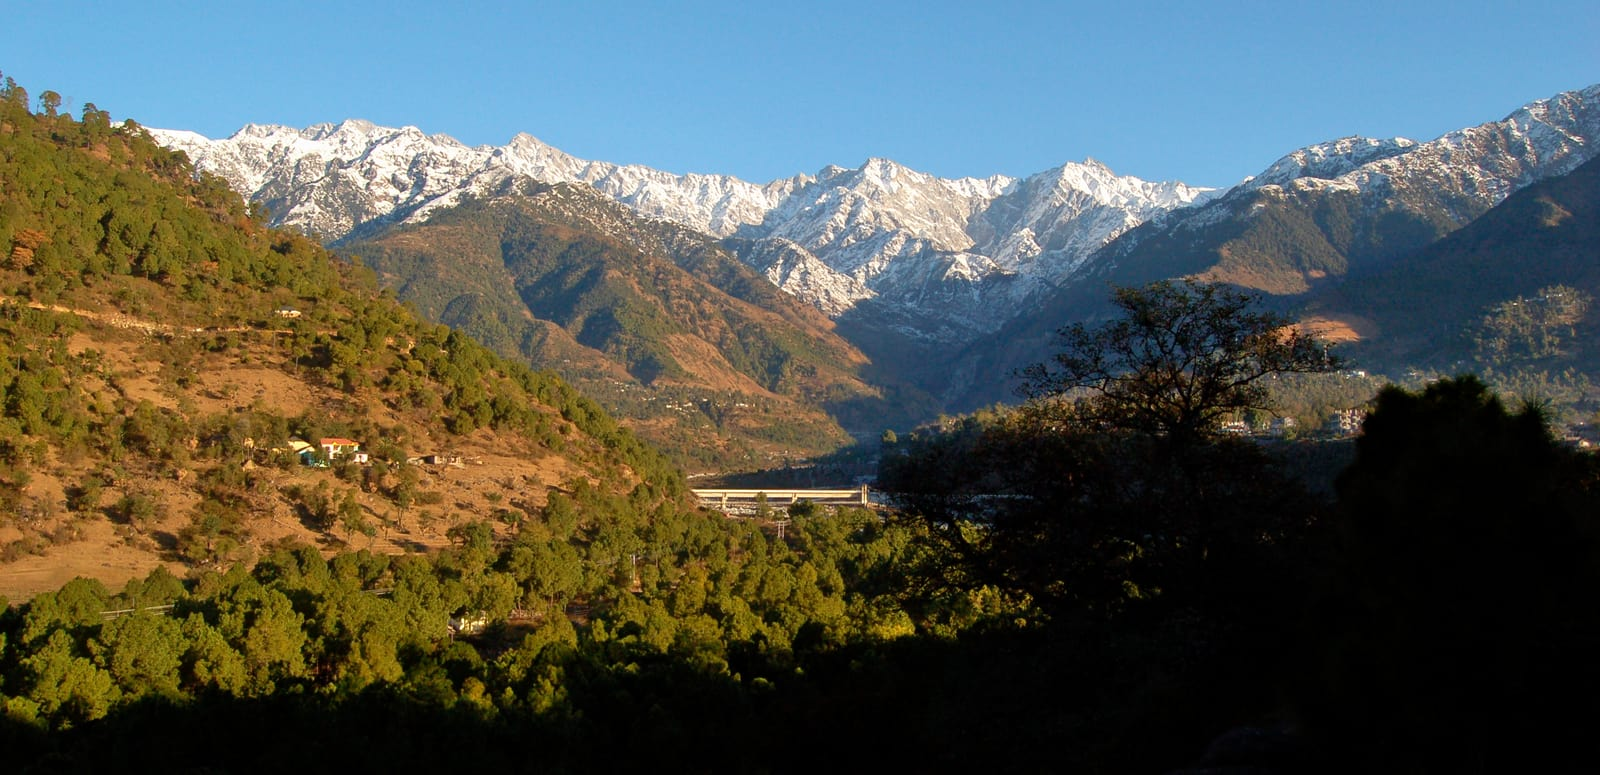 1492769737_a_view_of_palampur_himachal_pradesh_india.jpg